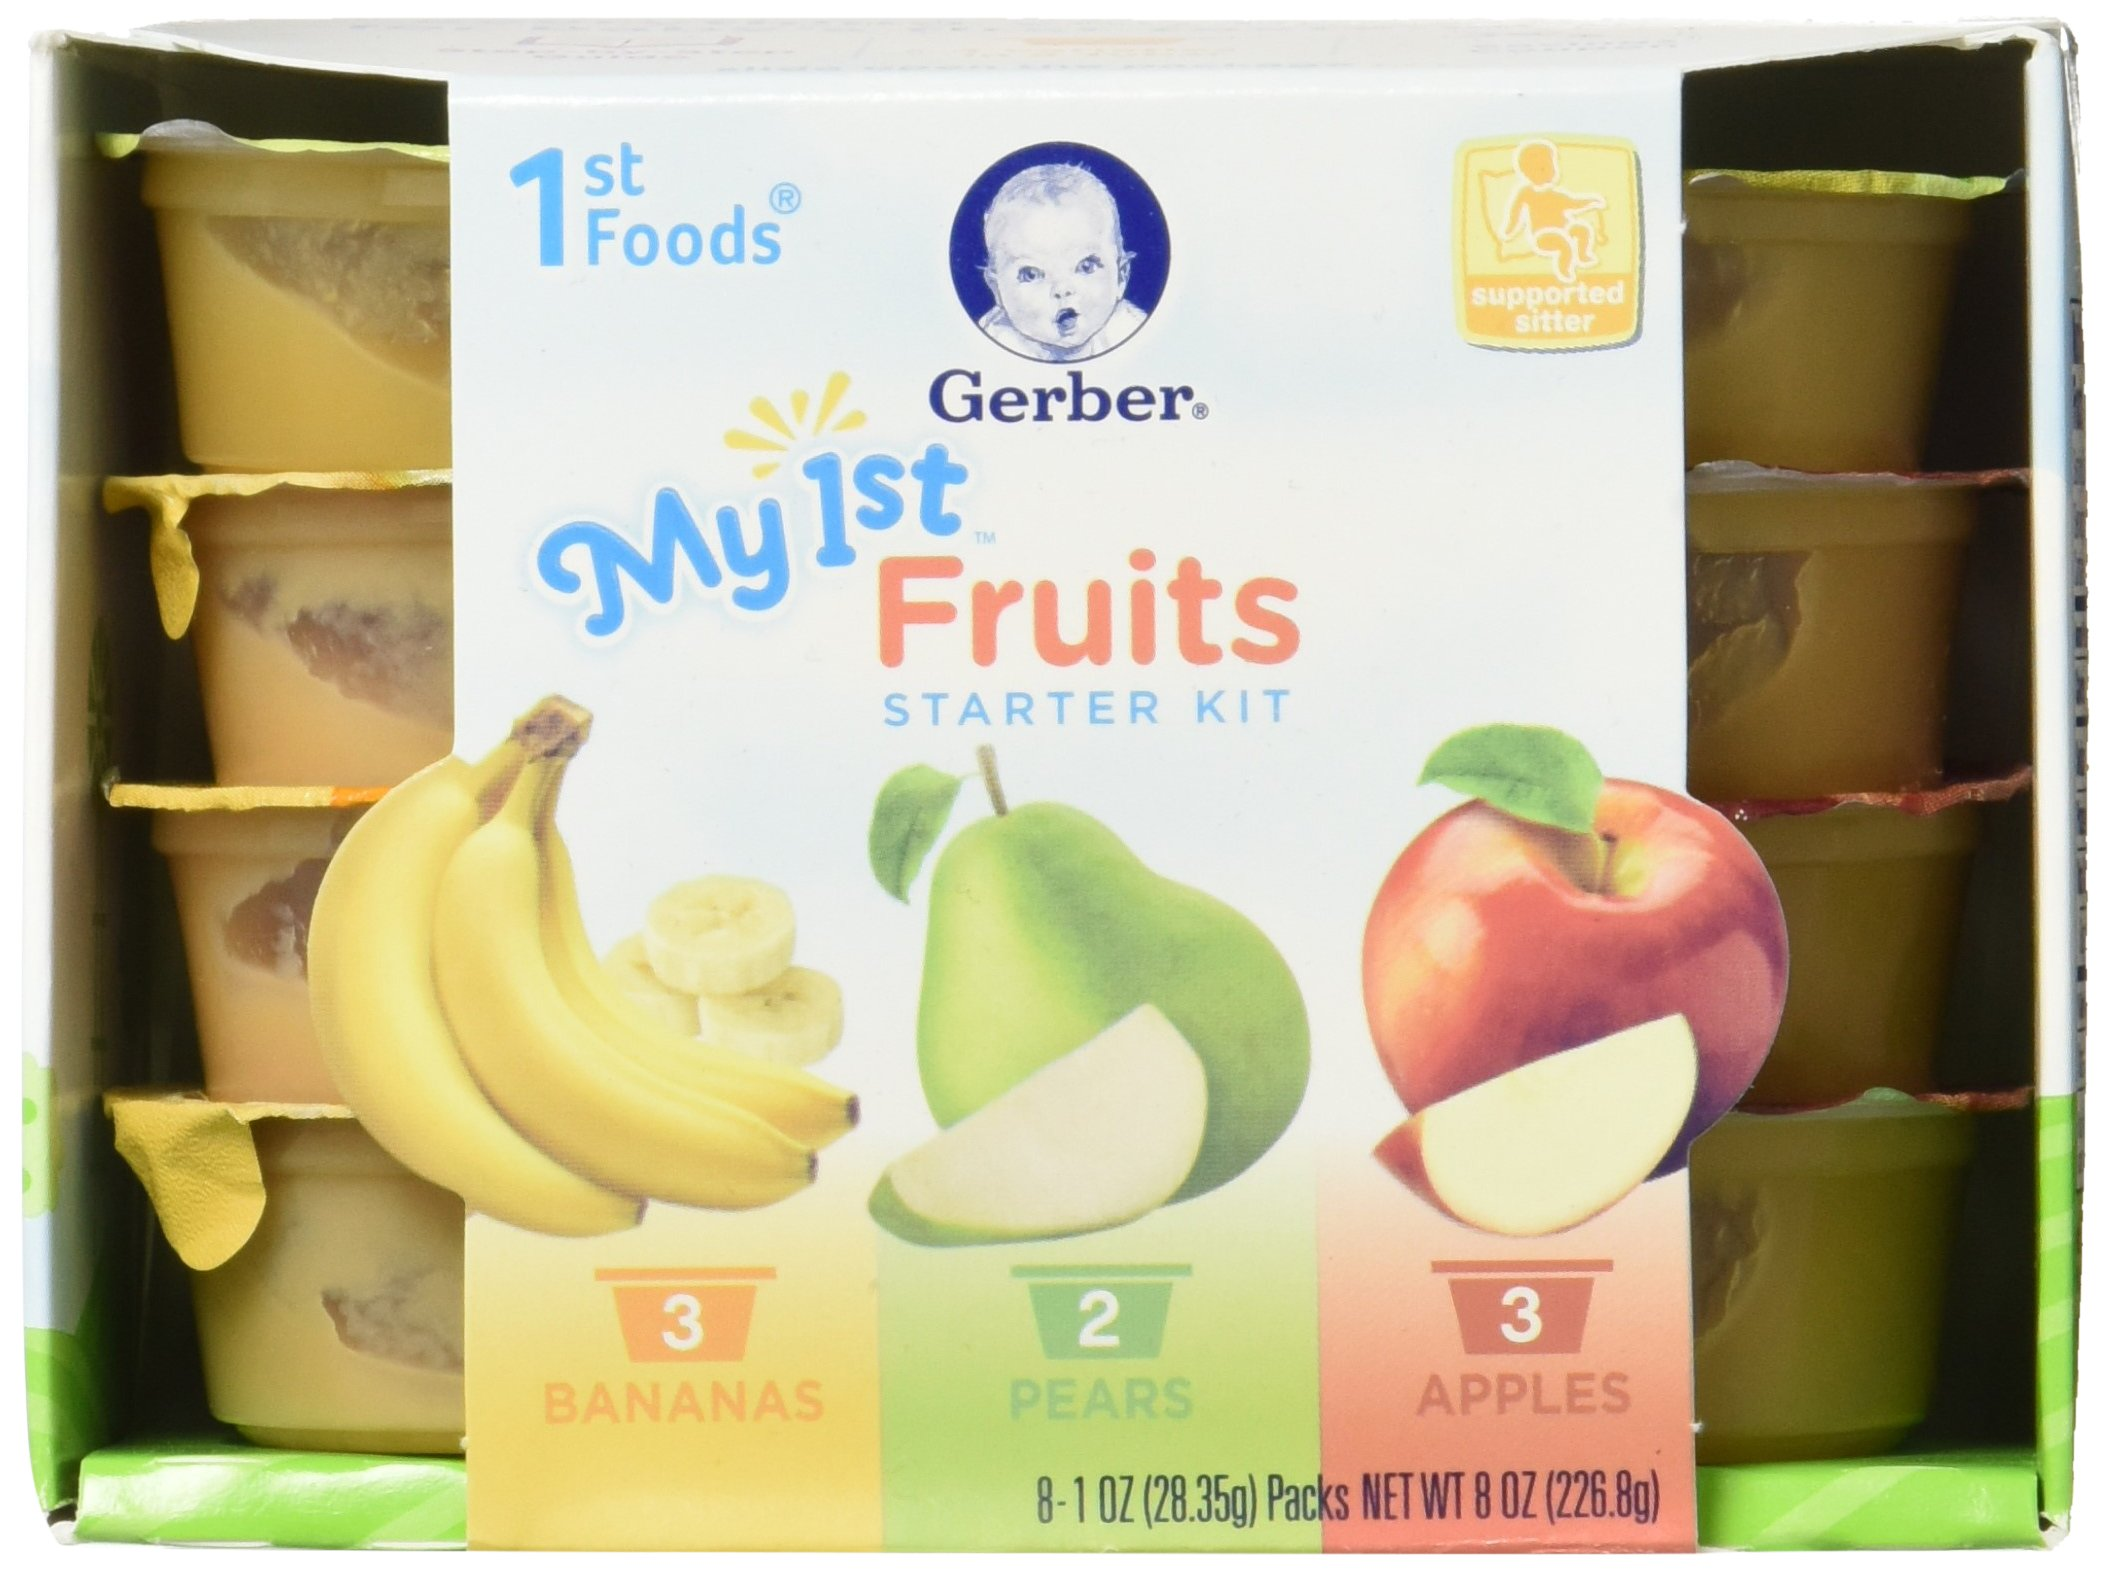 Gerber 1st Foods My 1st Fruits Starter Kit, 1 Ounce Tubs, 8 Count (Pack of 4)